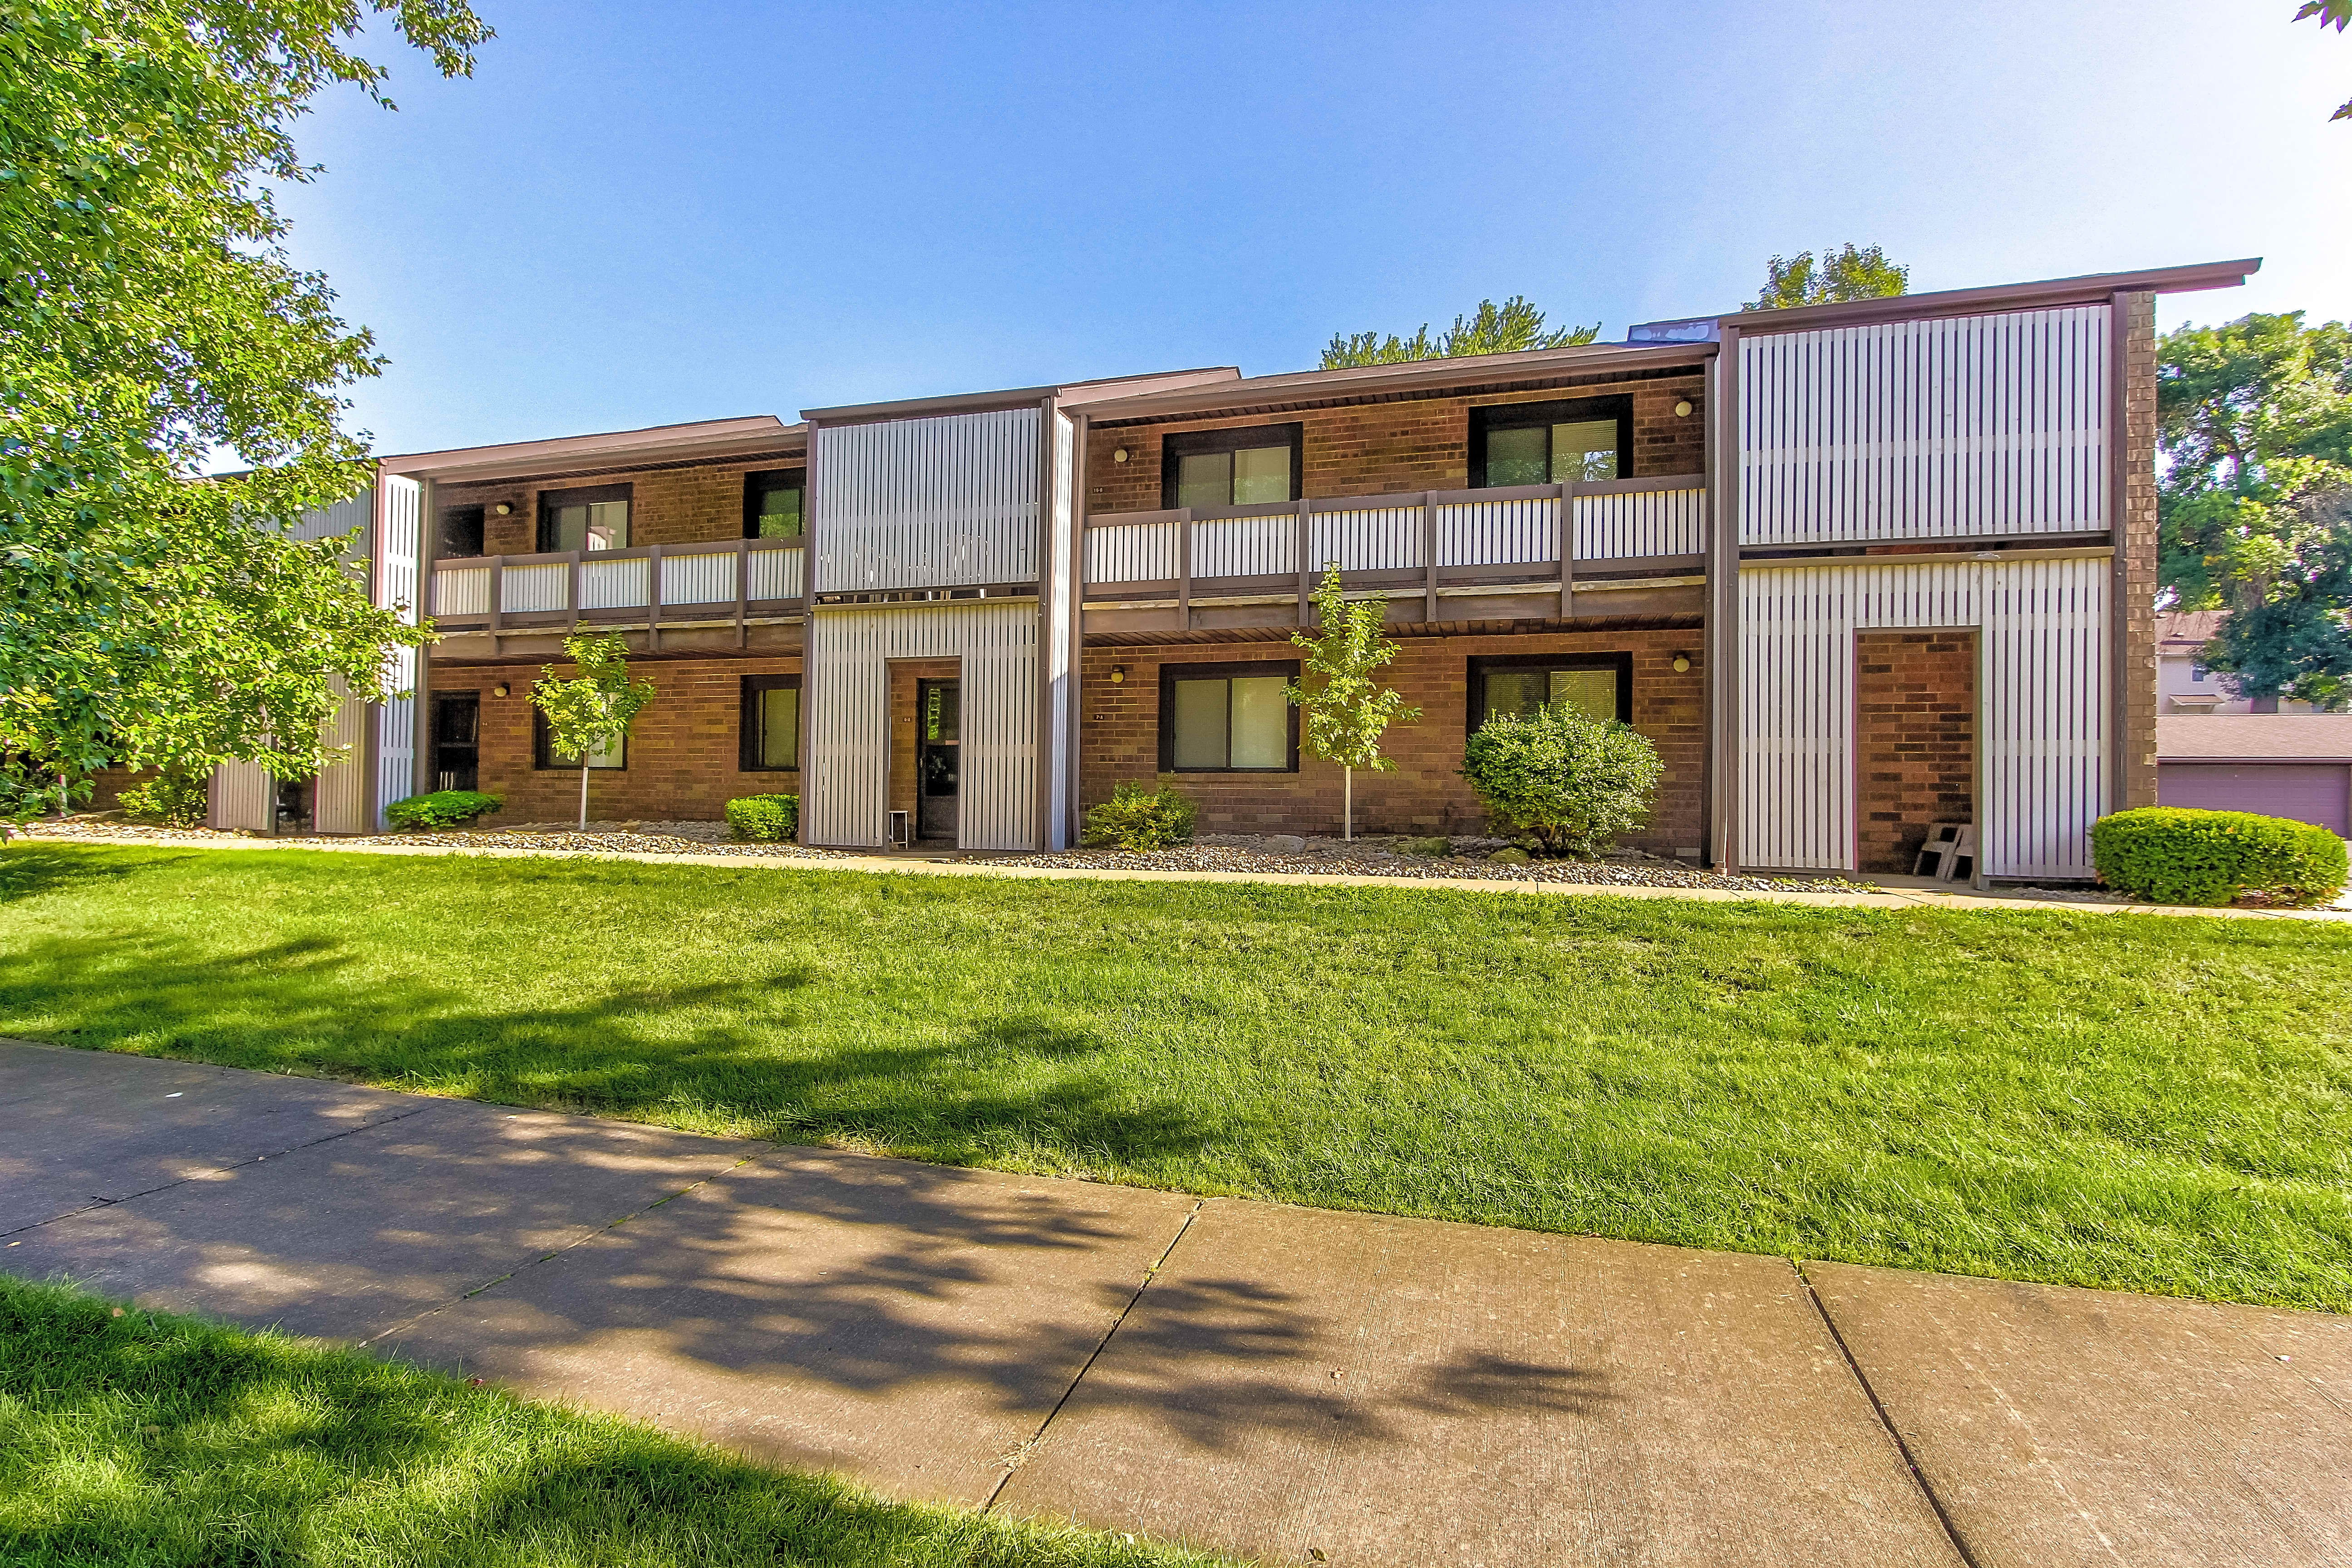 Apartments Near Akron Bruziv - Akron for University of Akron Students in Akron, OH